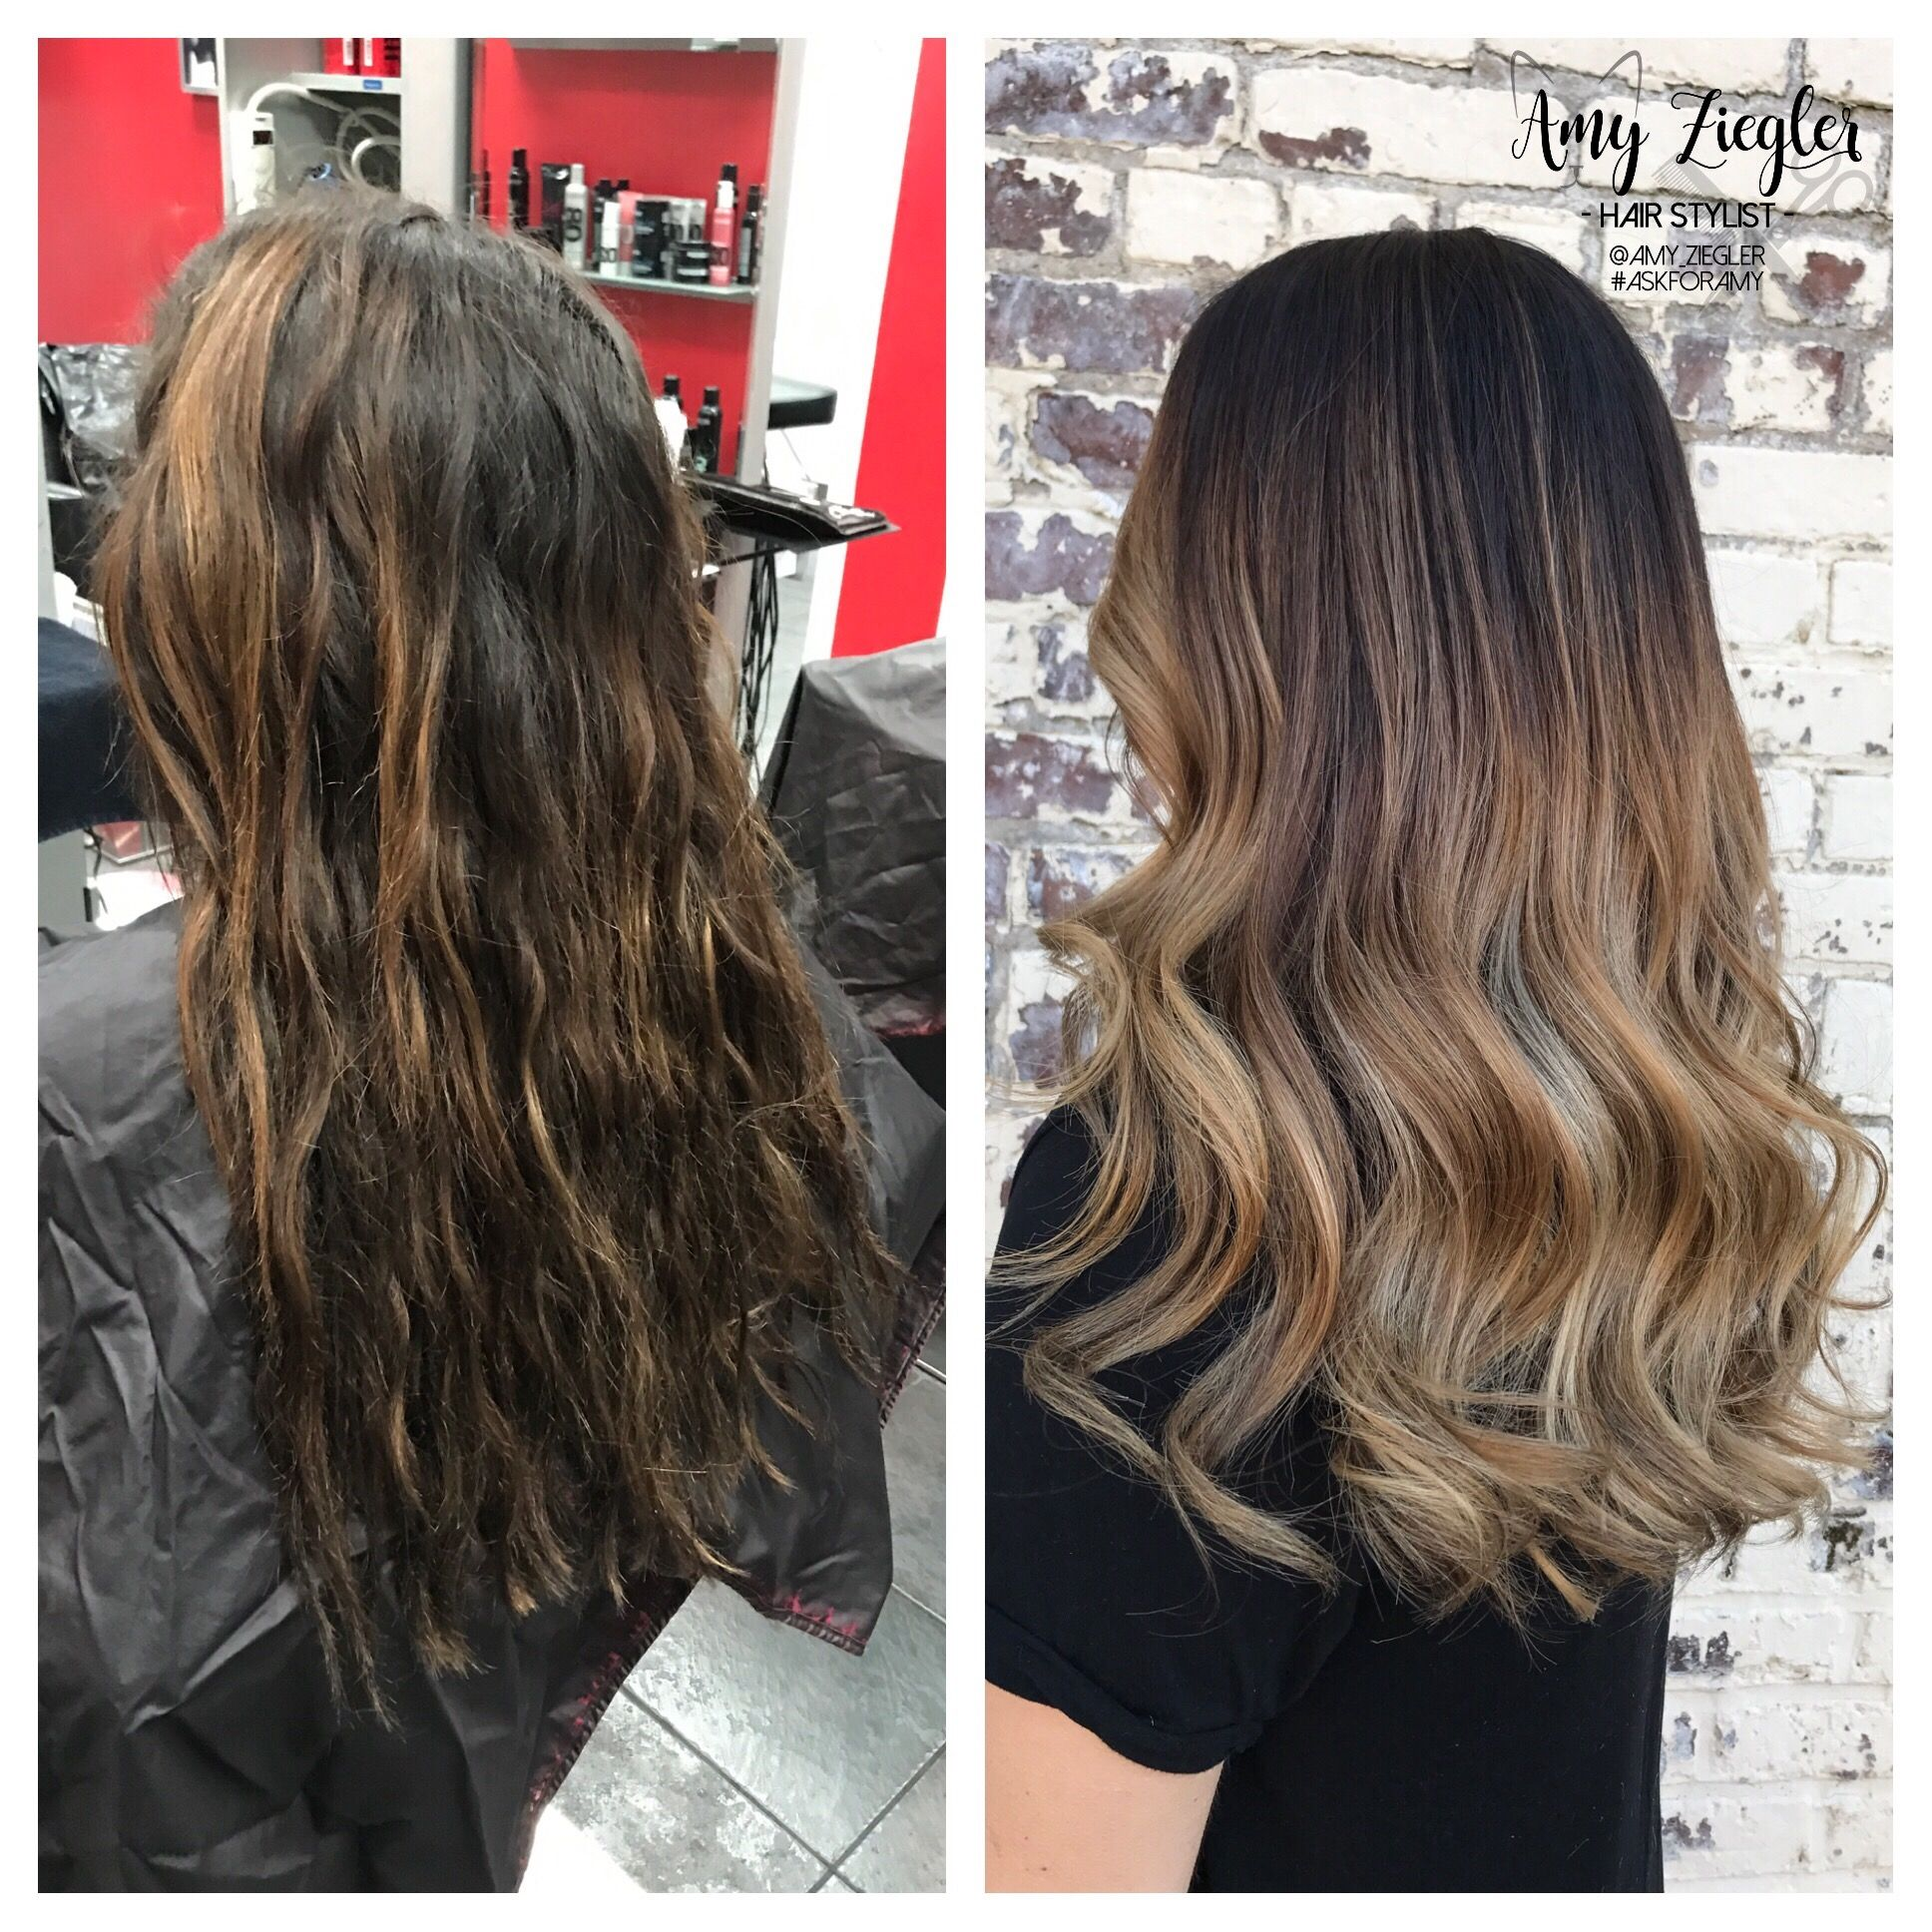 Before & after balayage ombre transformation by @amy_ziegler